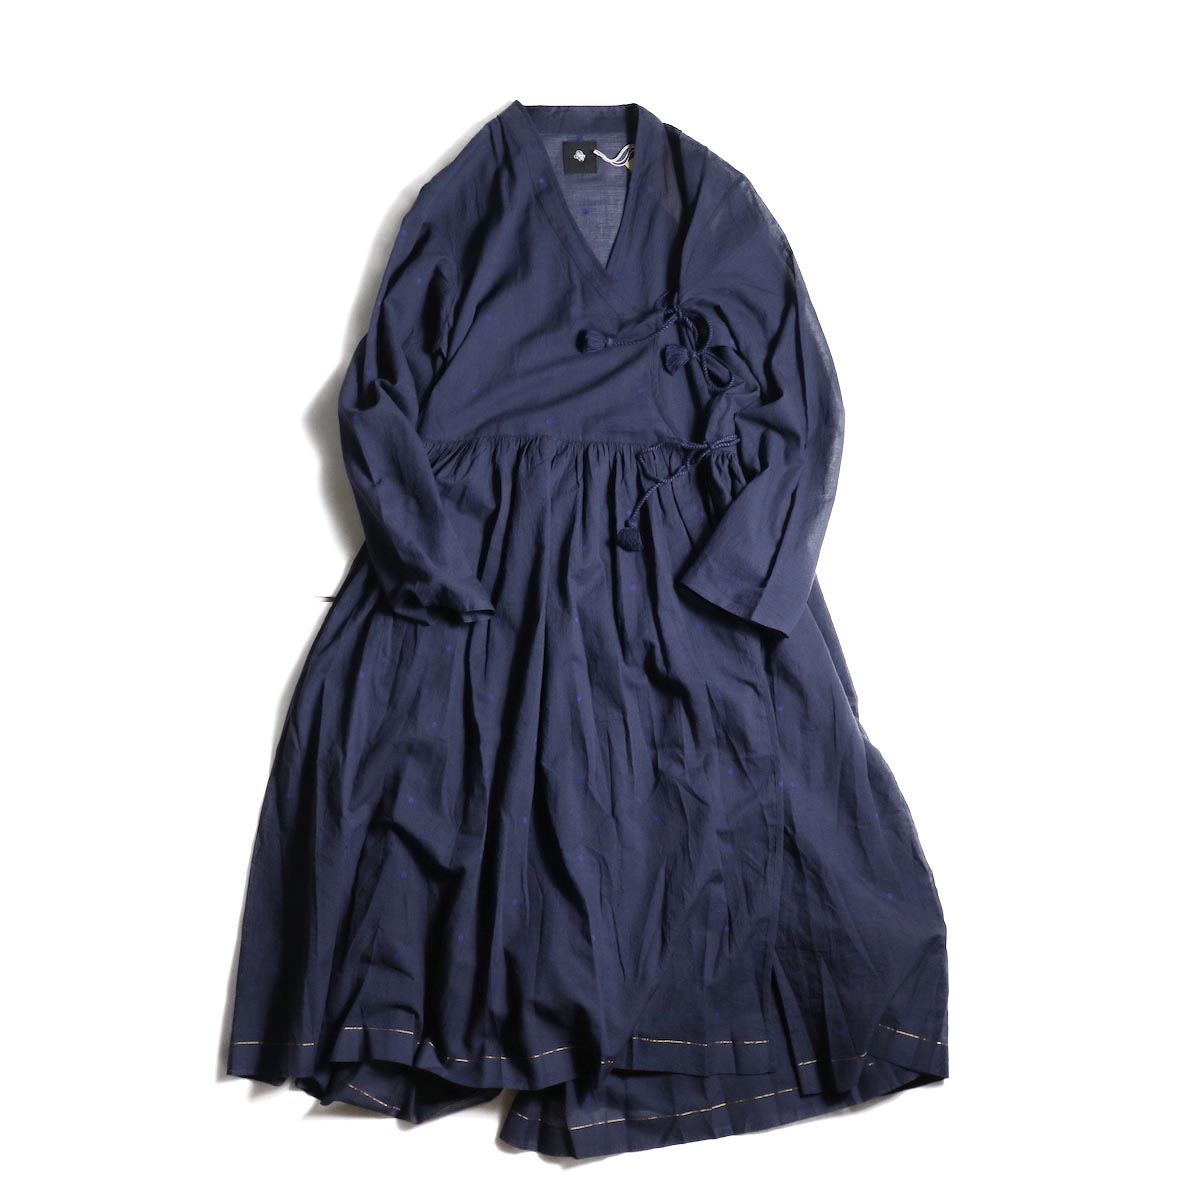 maison de soil / CACHE COEUR DRESS (NAVY/BLUEDOT)